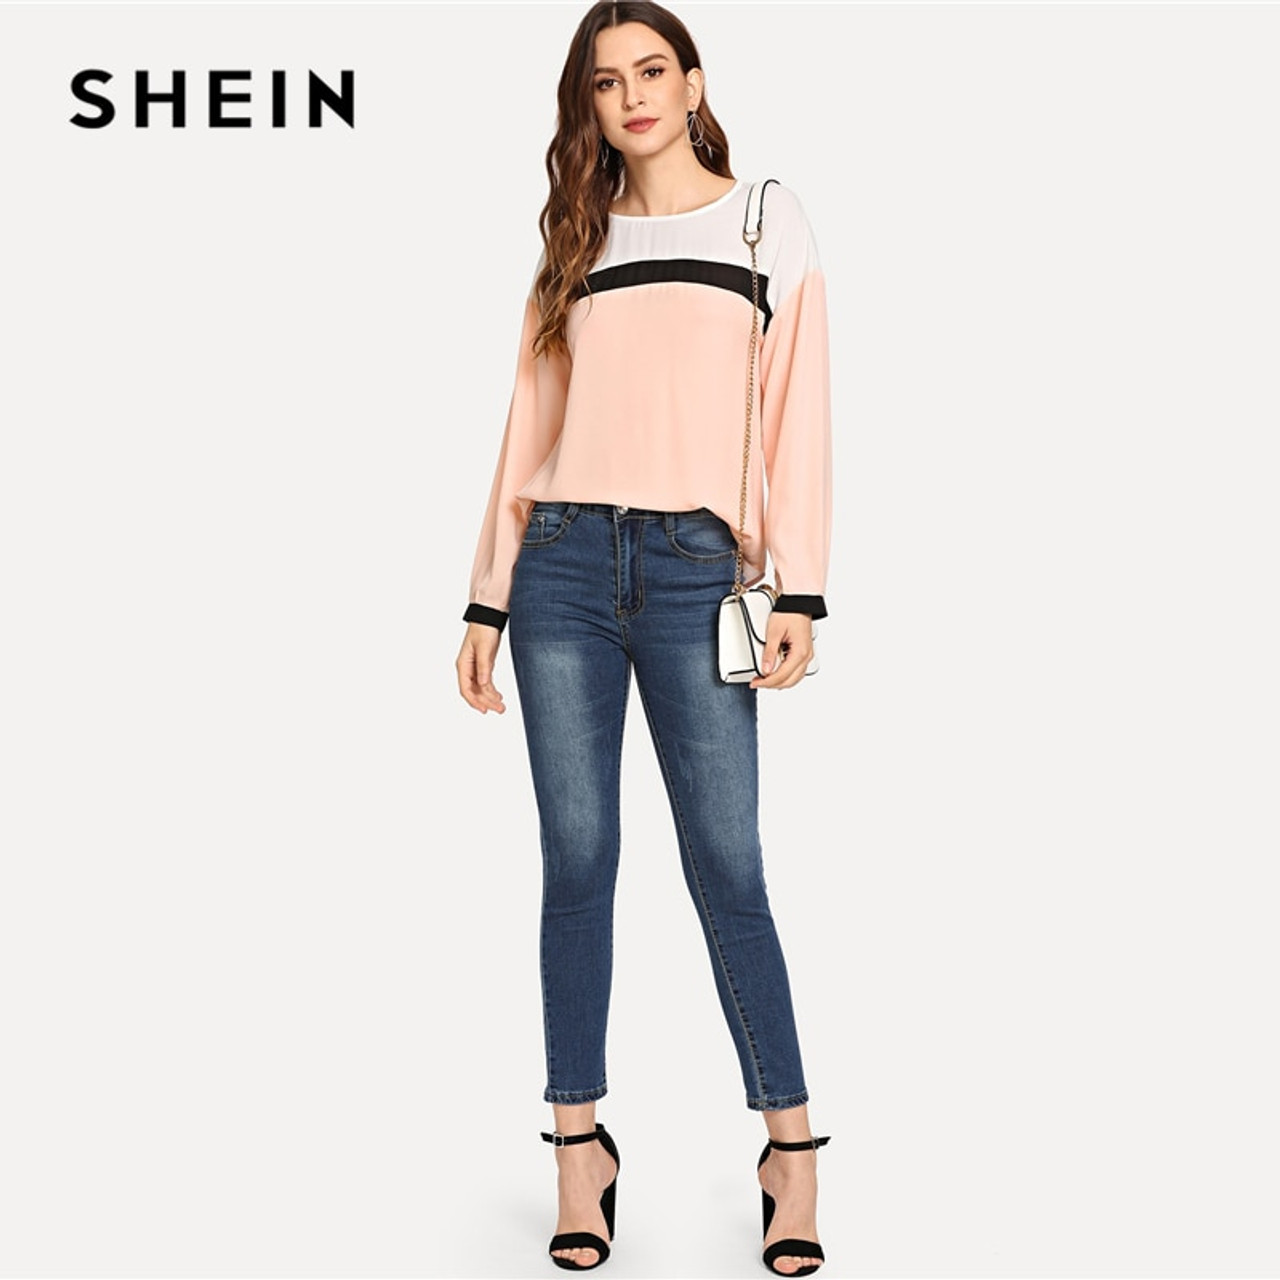 42d20d4ee5 ... SHEIN Pink Preppy Elegant Keyhole Back Color Block Long Sleeve  Pullovers Casual Blouse 2018 Autumn Campus ...